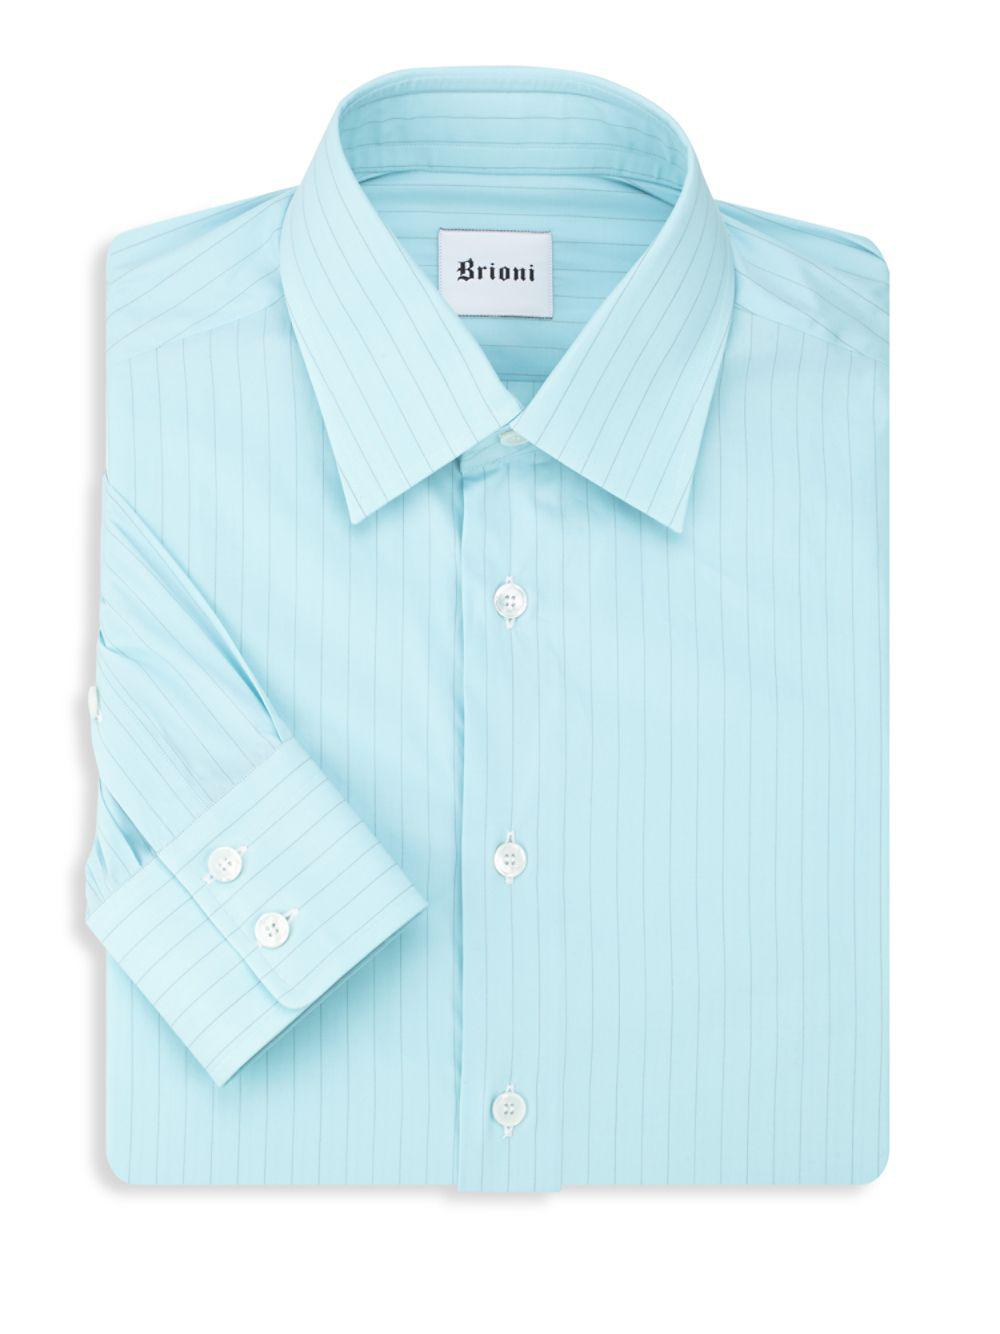 Lyst Brioni Striped Dress Shirt In Blue For Men